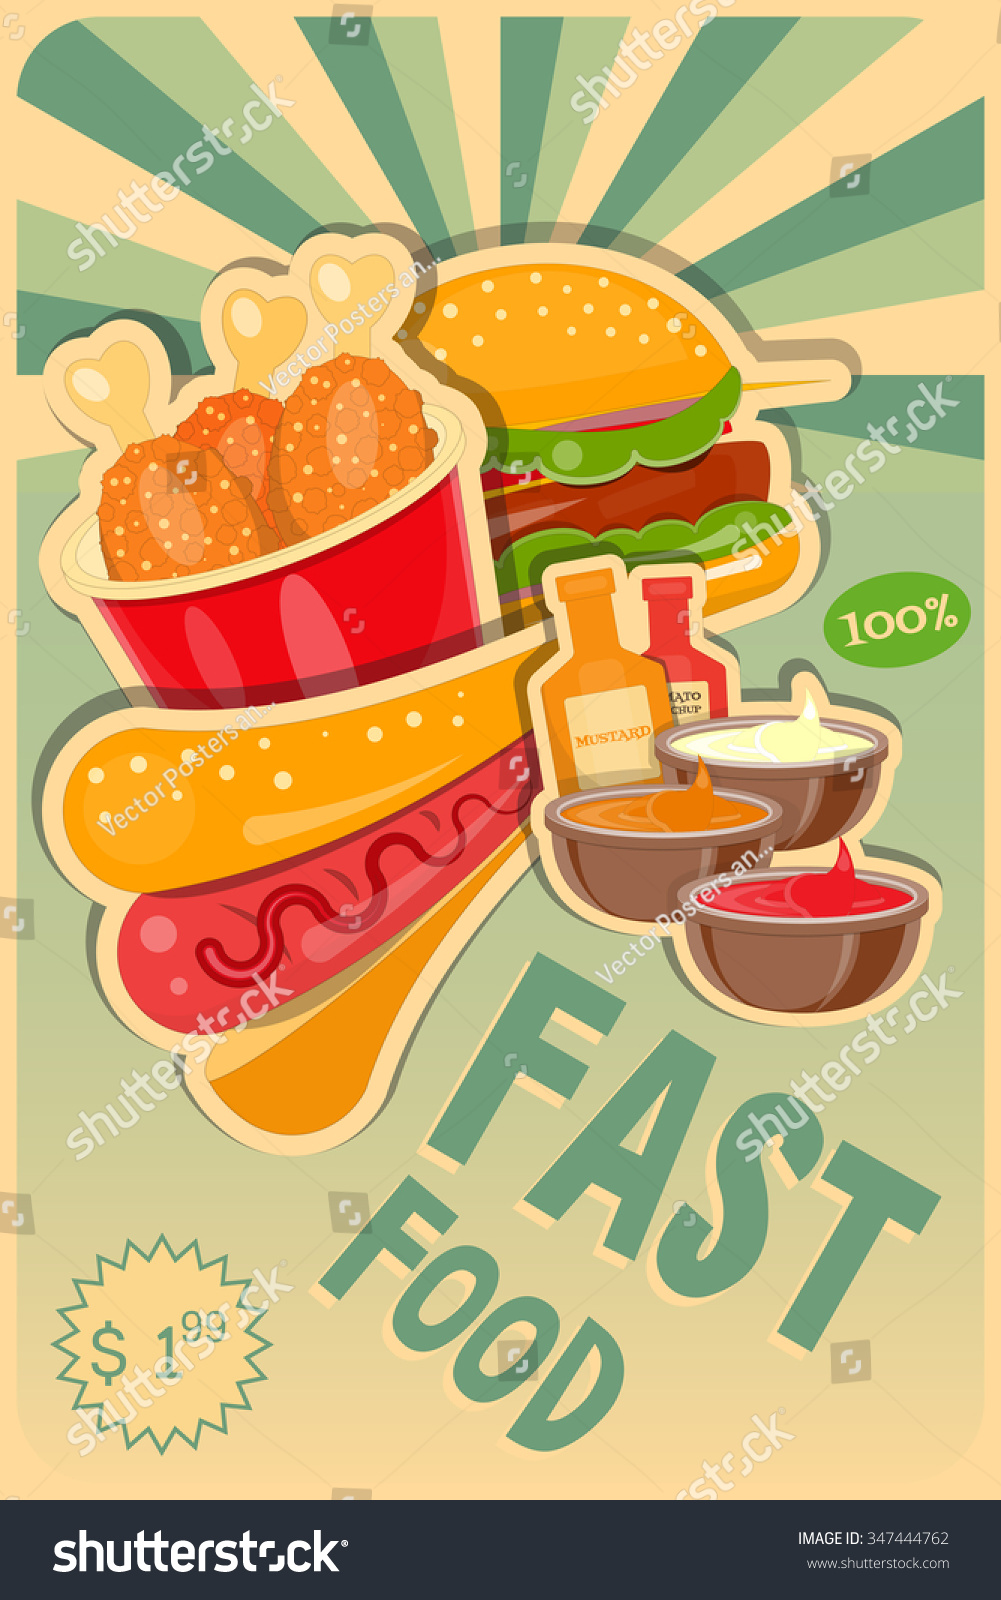 Fast Food Poster - Burgers, Hot Dog And Chicken ...